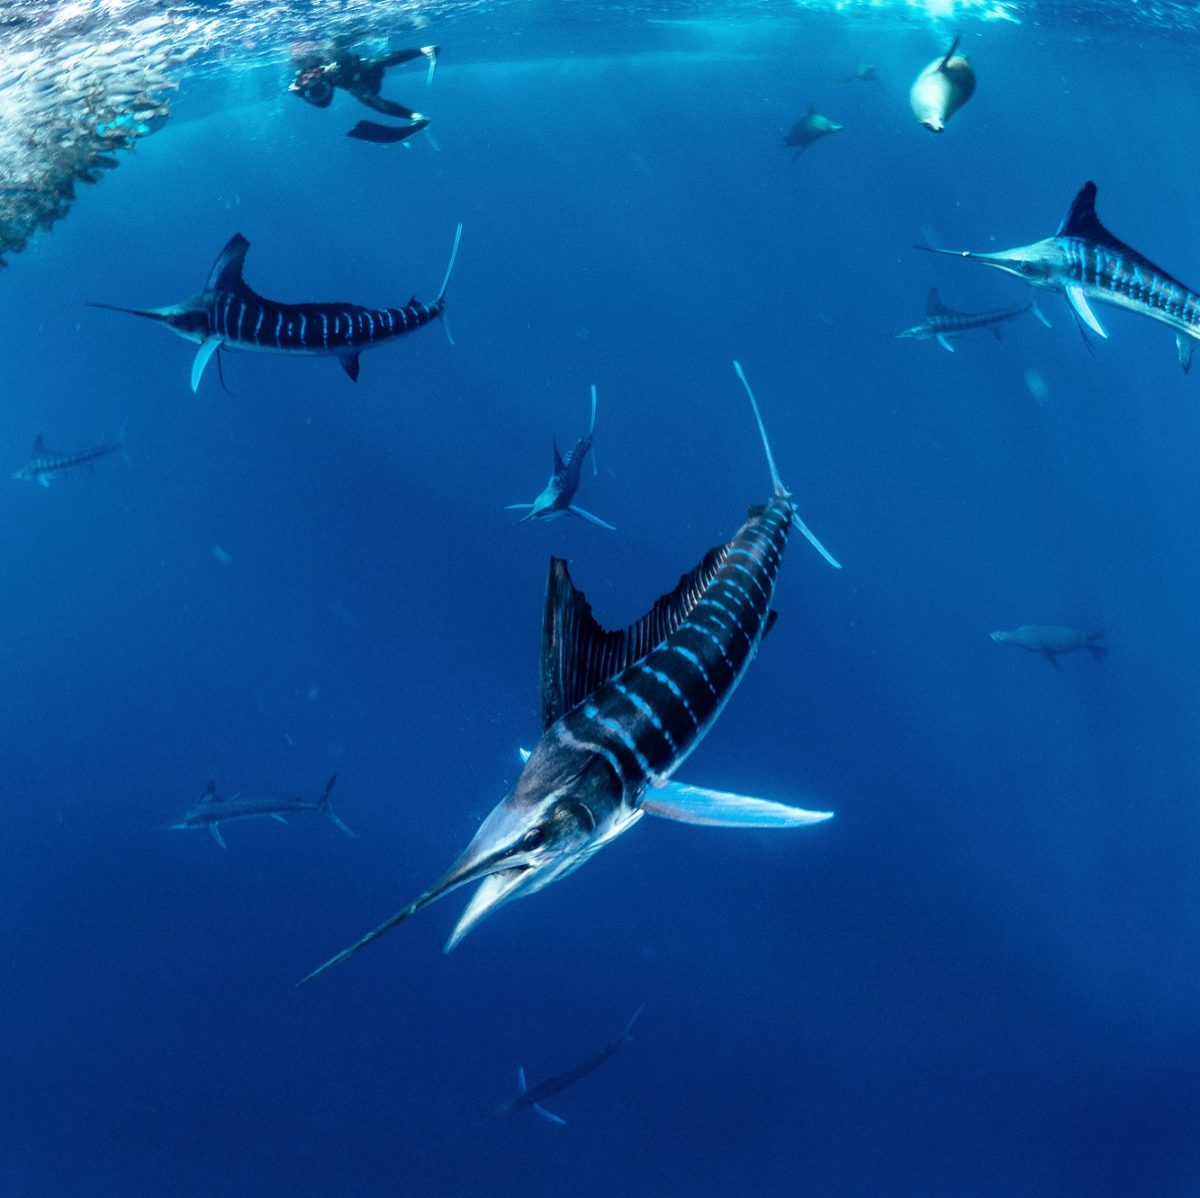 Diving with striped marlin in Mexico